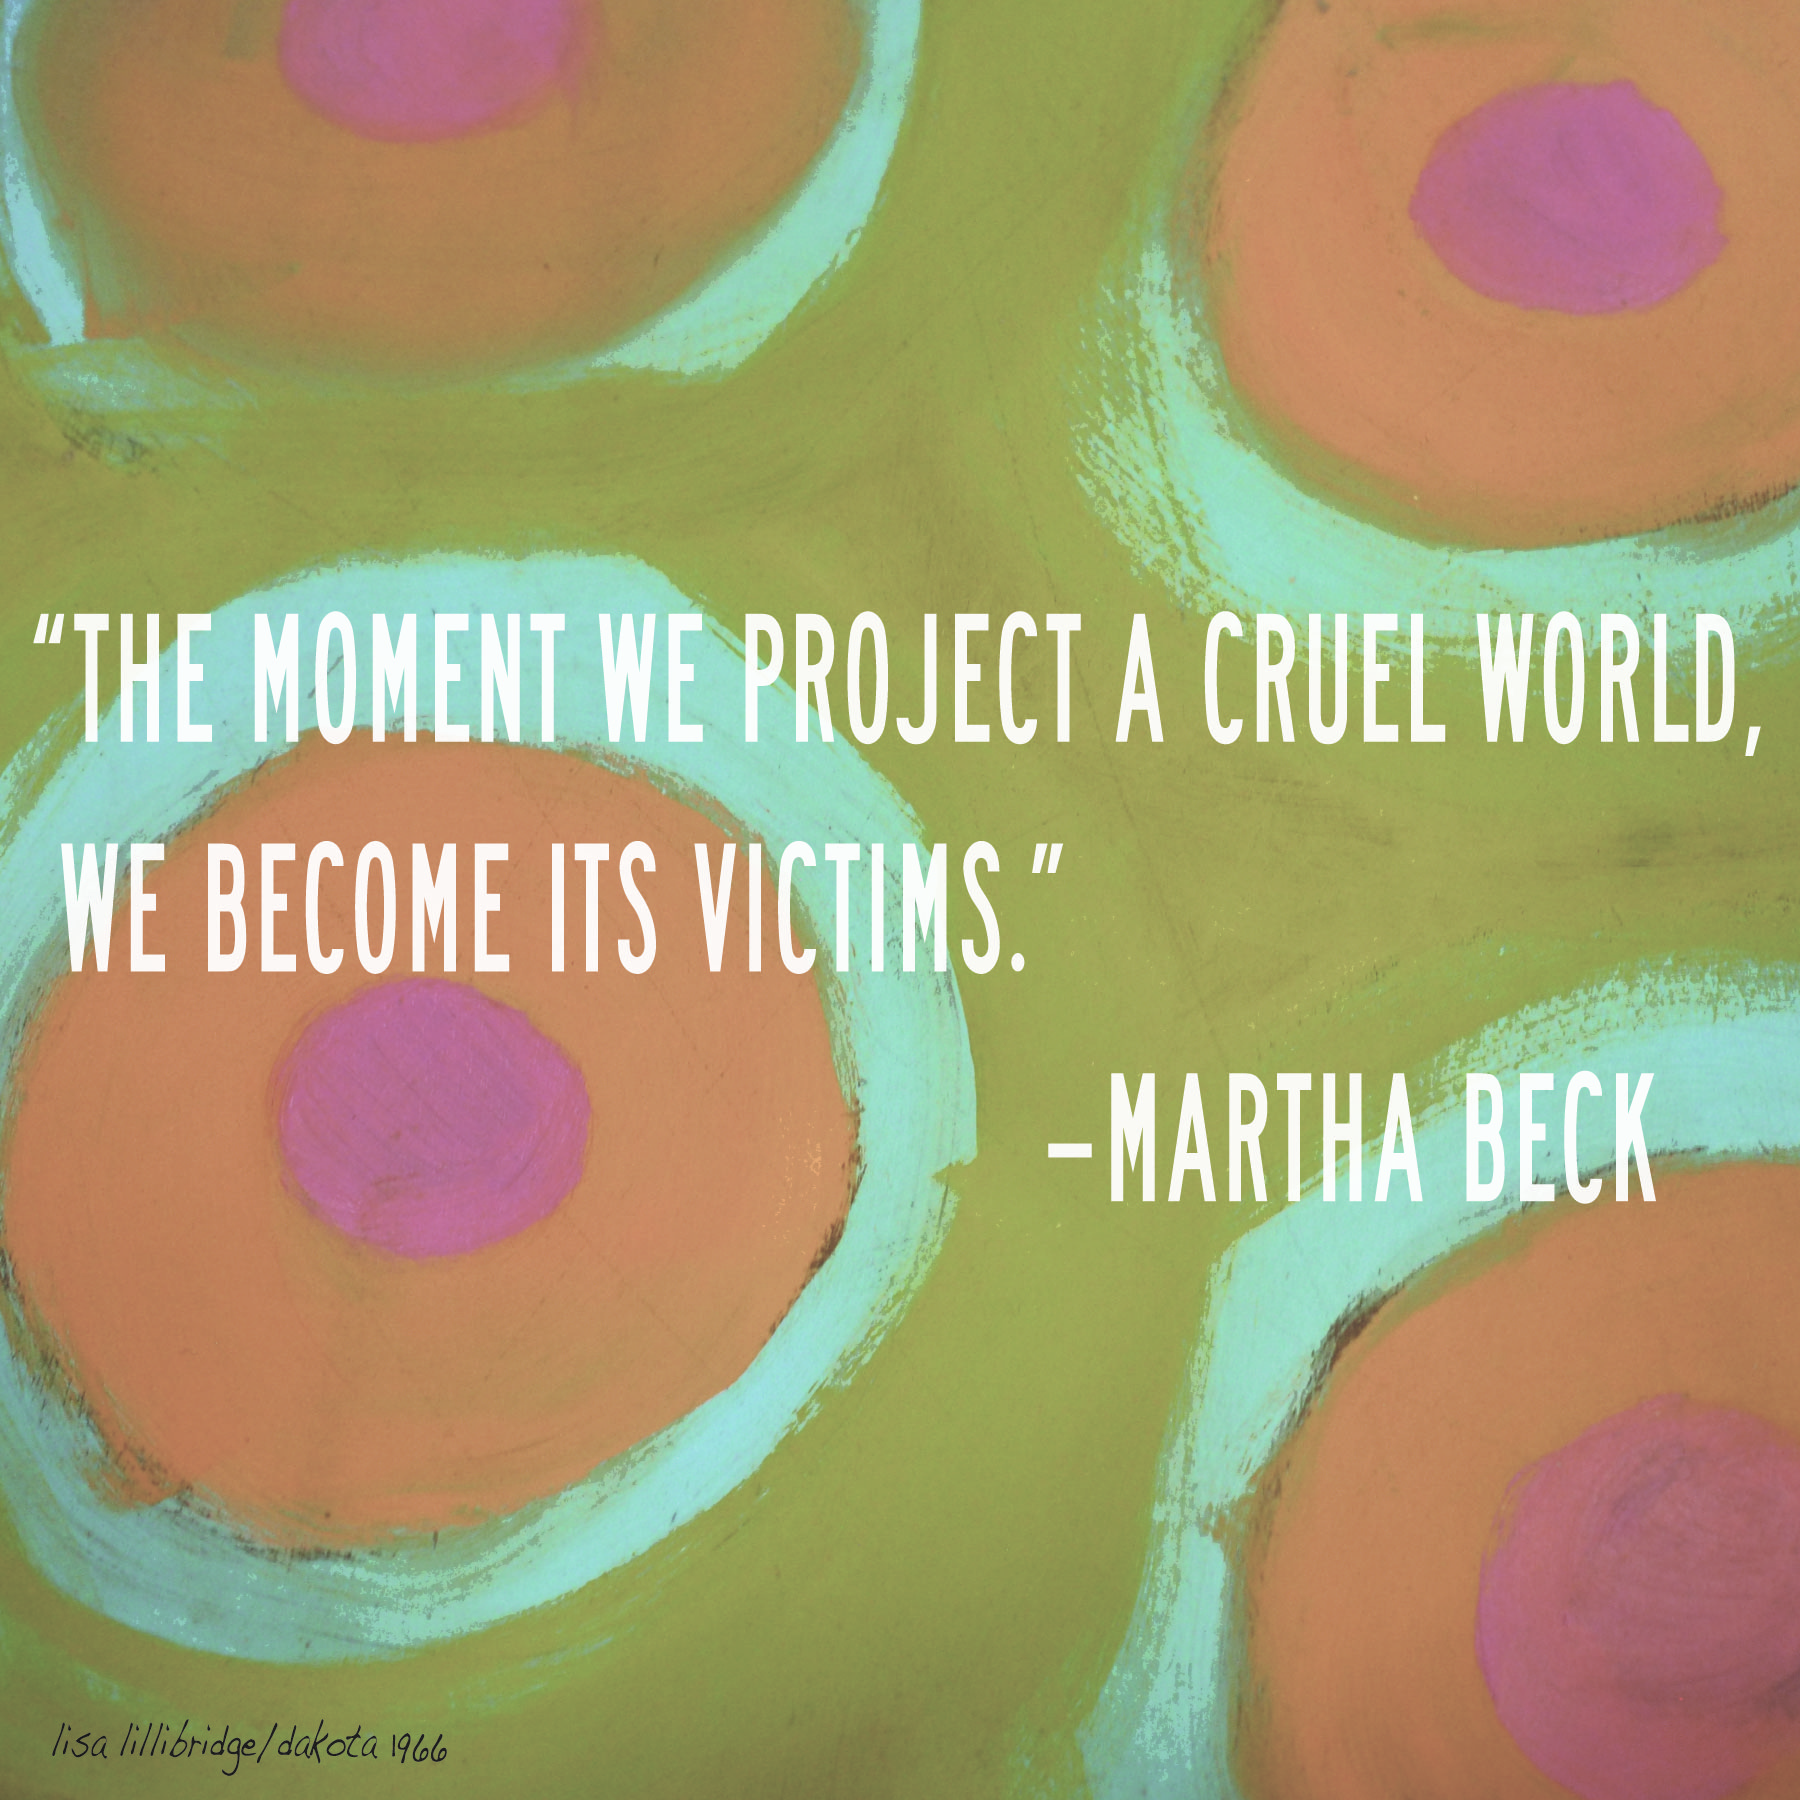 martha-beck-victims-quote-lisa-lillibridge